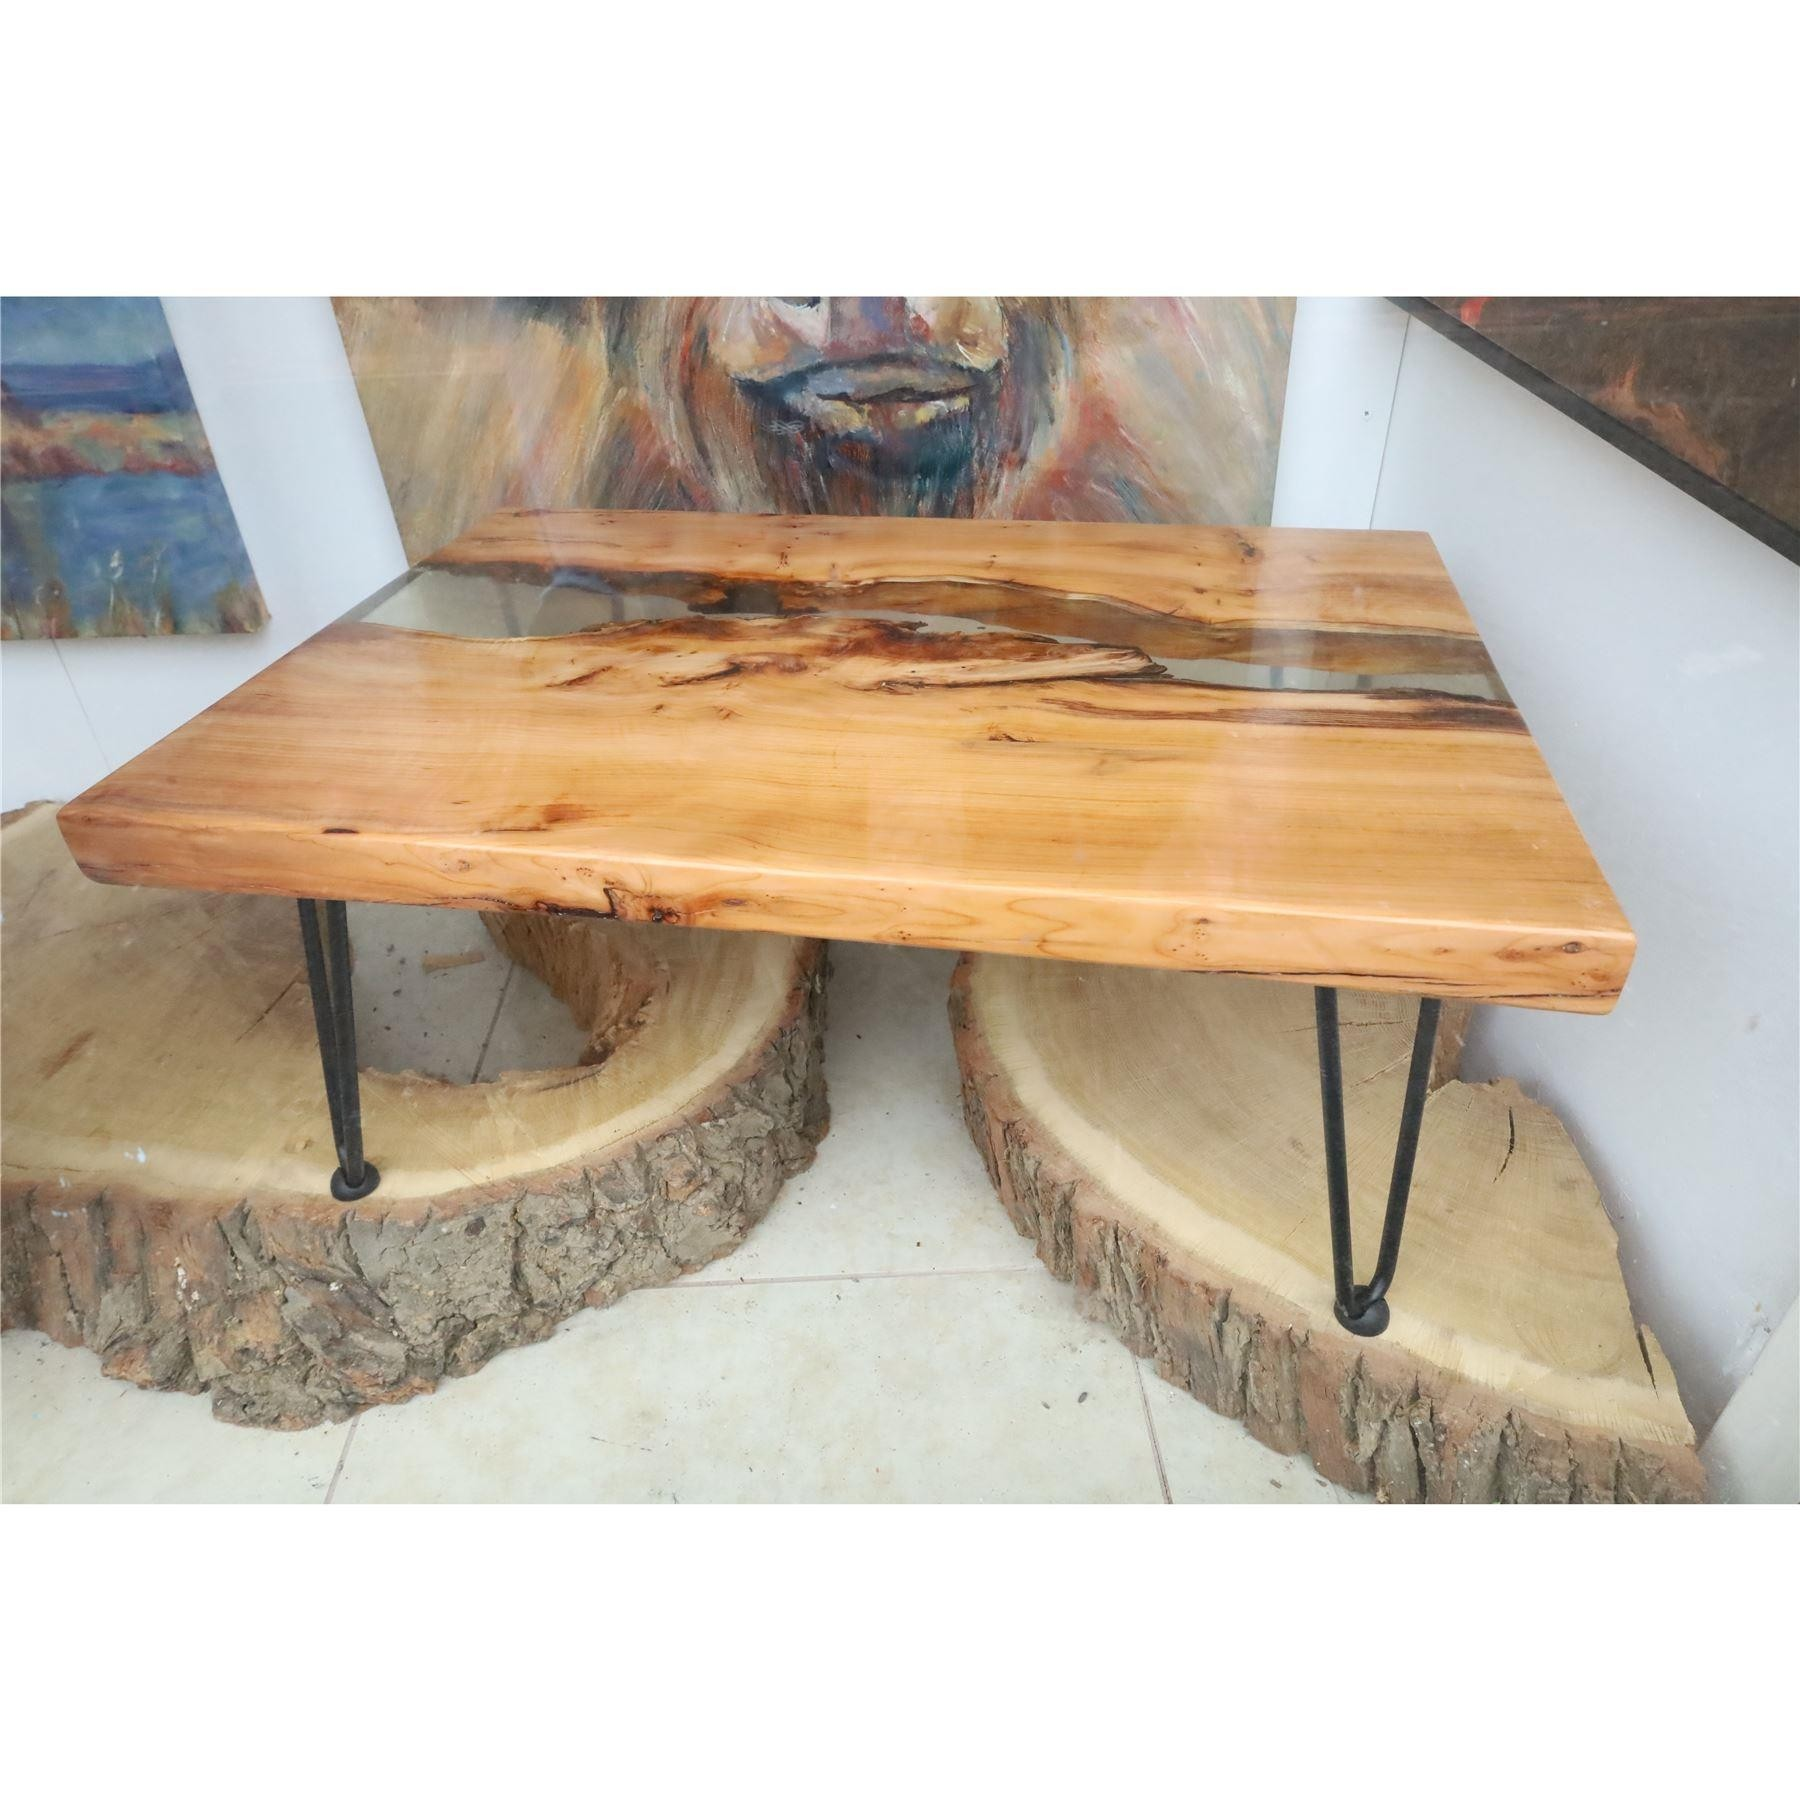 Yew wood river coffee table live edge furniture wood and resin.